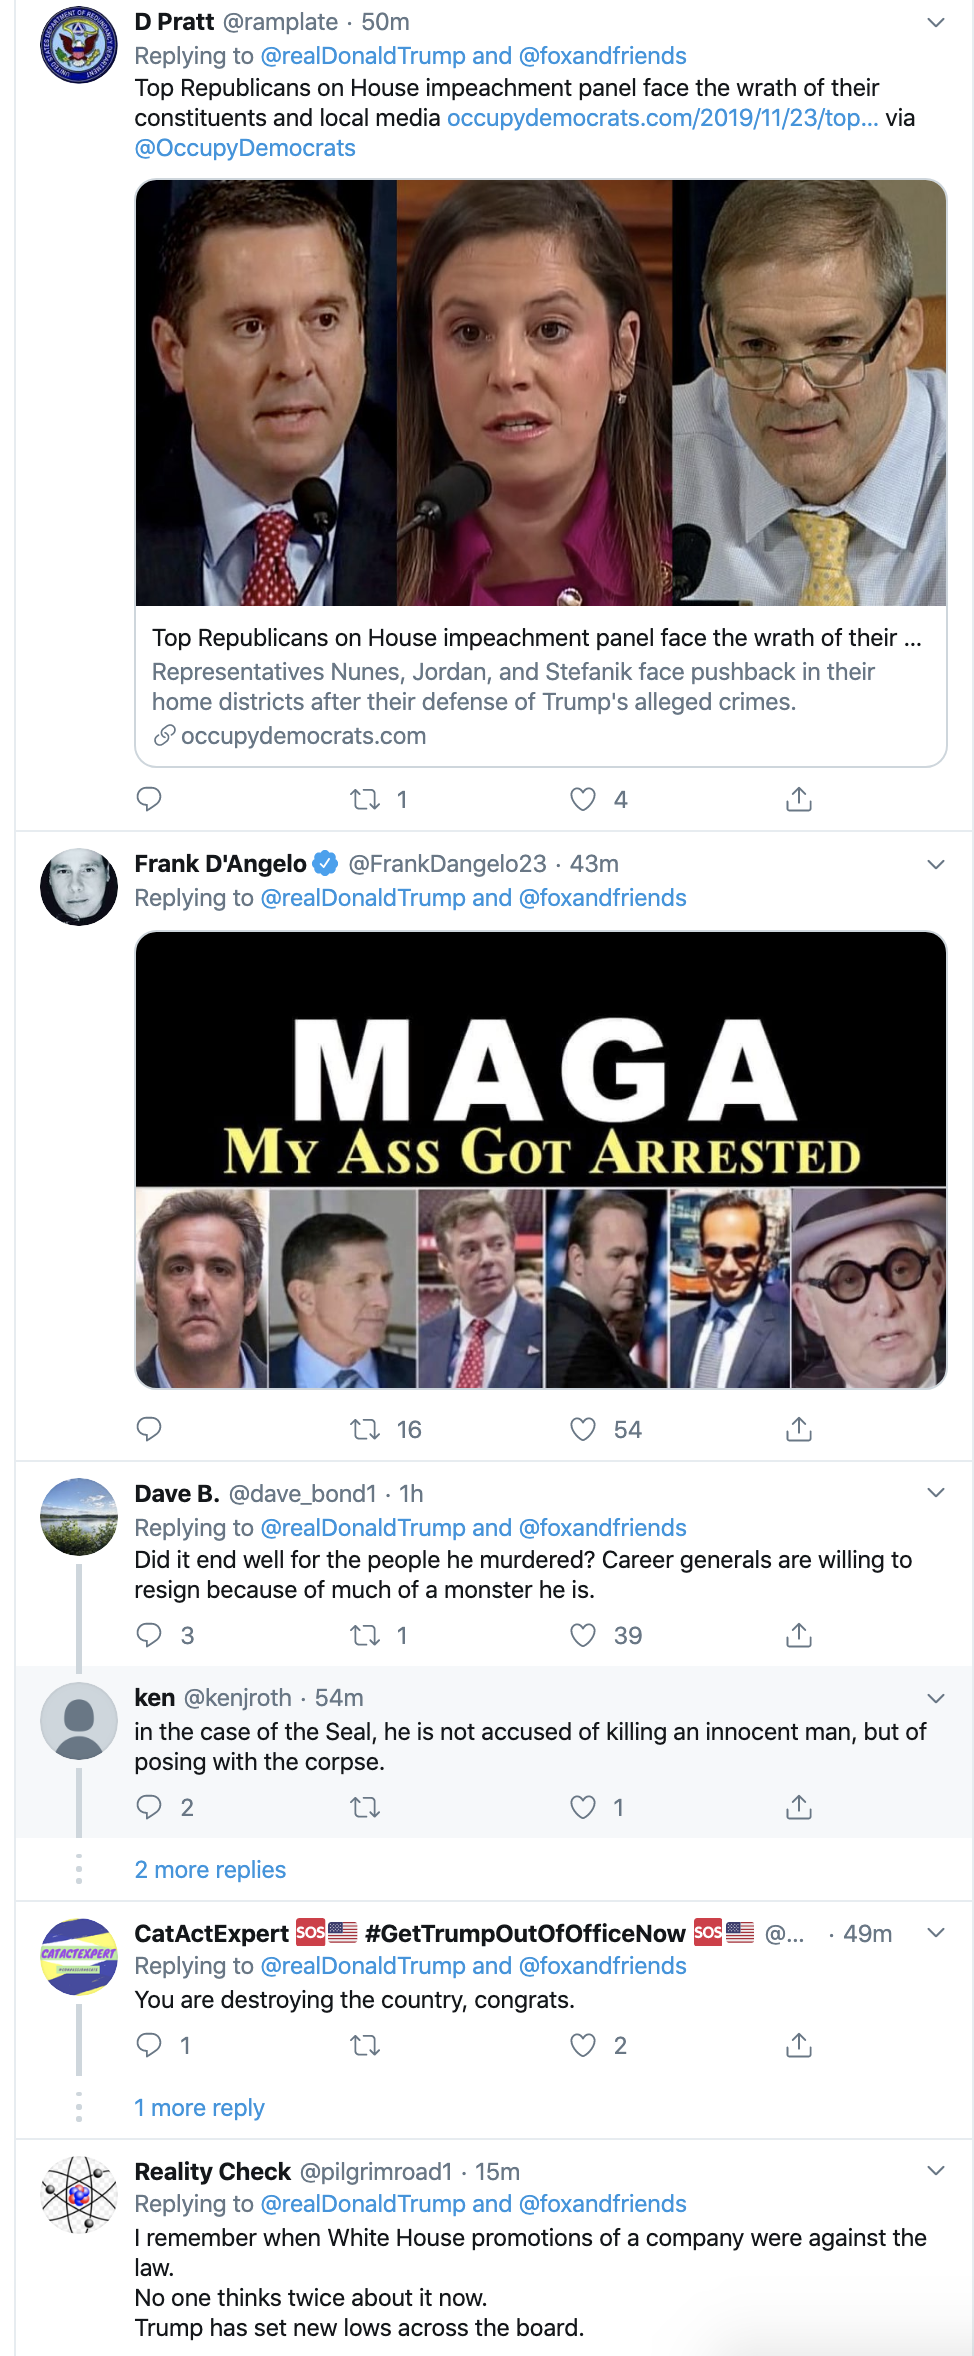 Screen-Shot-2019-11-24-at-7.14.44-AM Trump Erupts Into 4-Tweet Sunday Morning Impeachment Outburst Corruption Featured Impeachment Military Top Stories